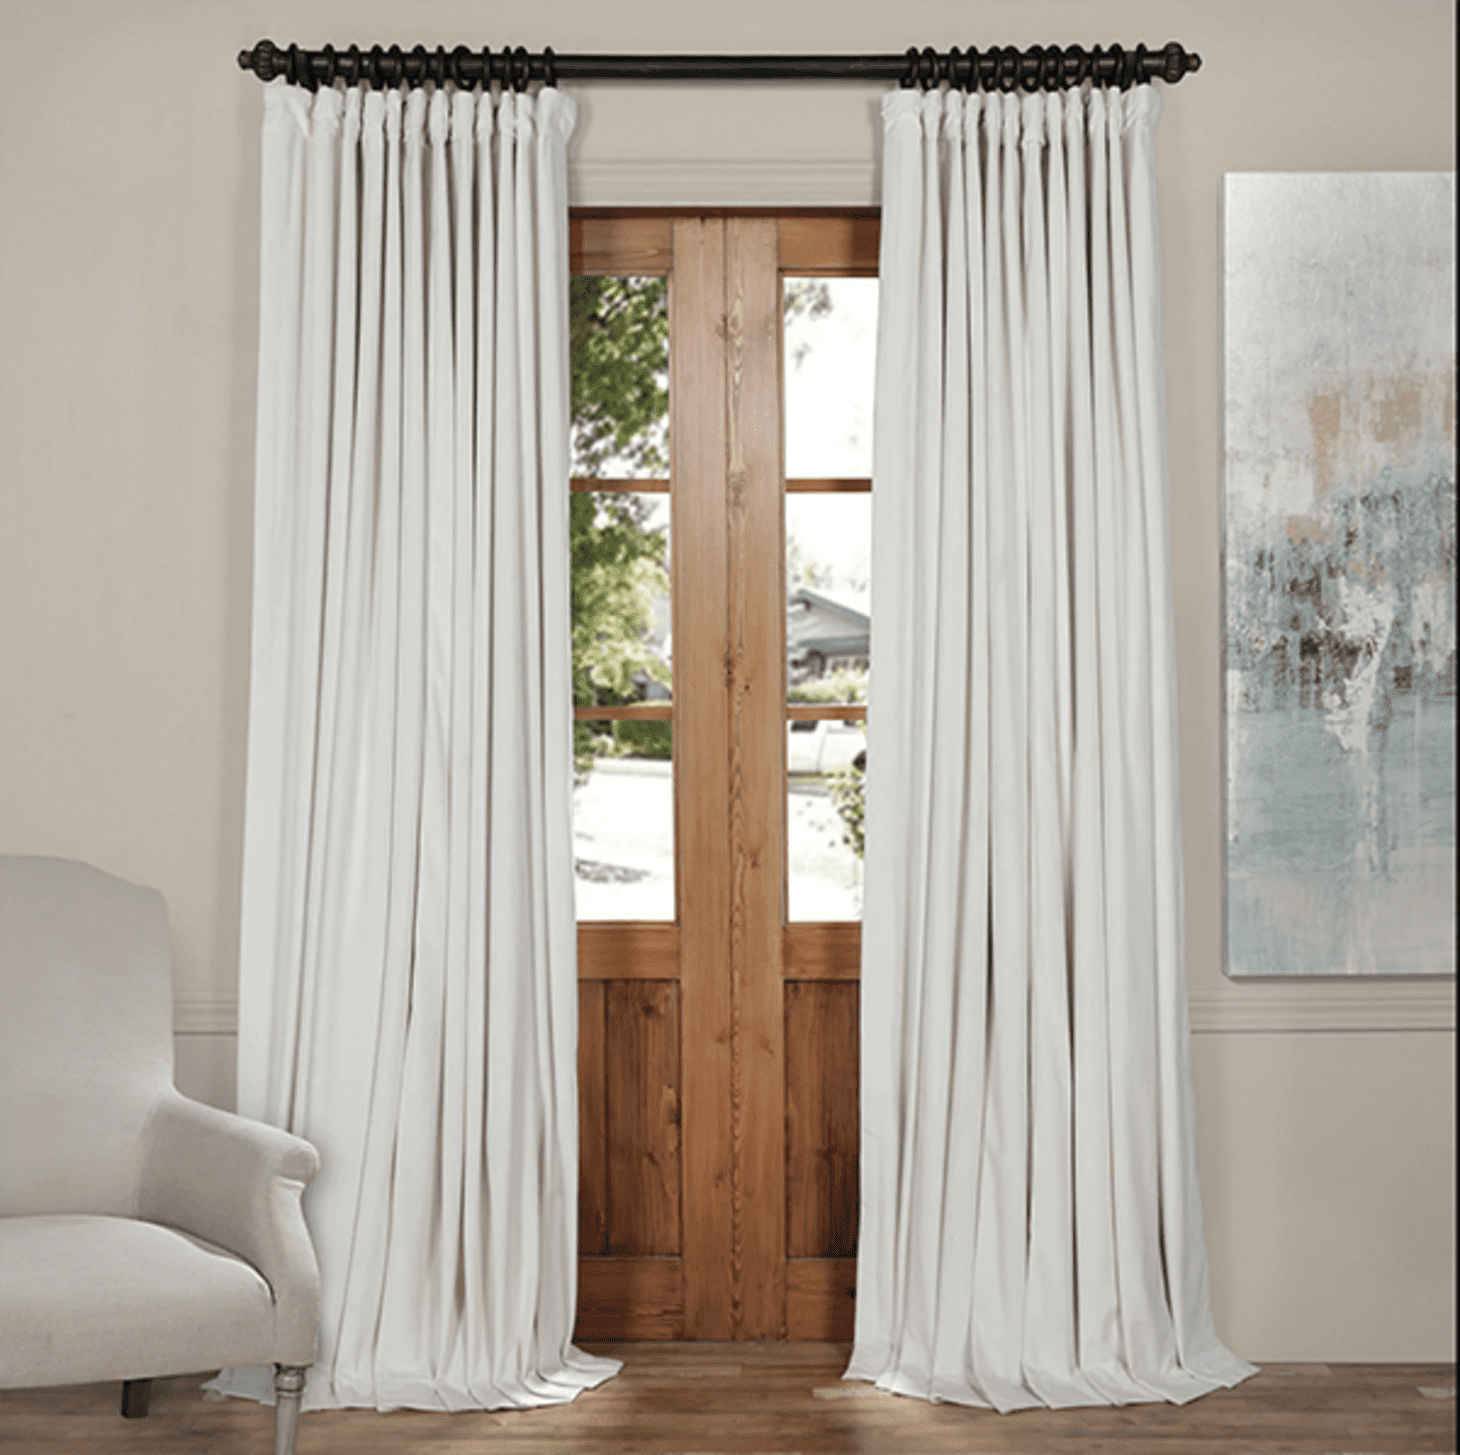 Best Insulated Blackout Curtains | Apartment Therapy Intended For Solid Thermal Insulated Blackout Curtain Panel Pairs (View 21 of 30)